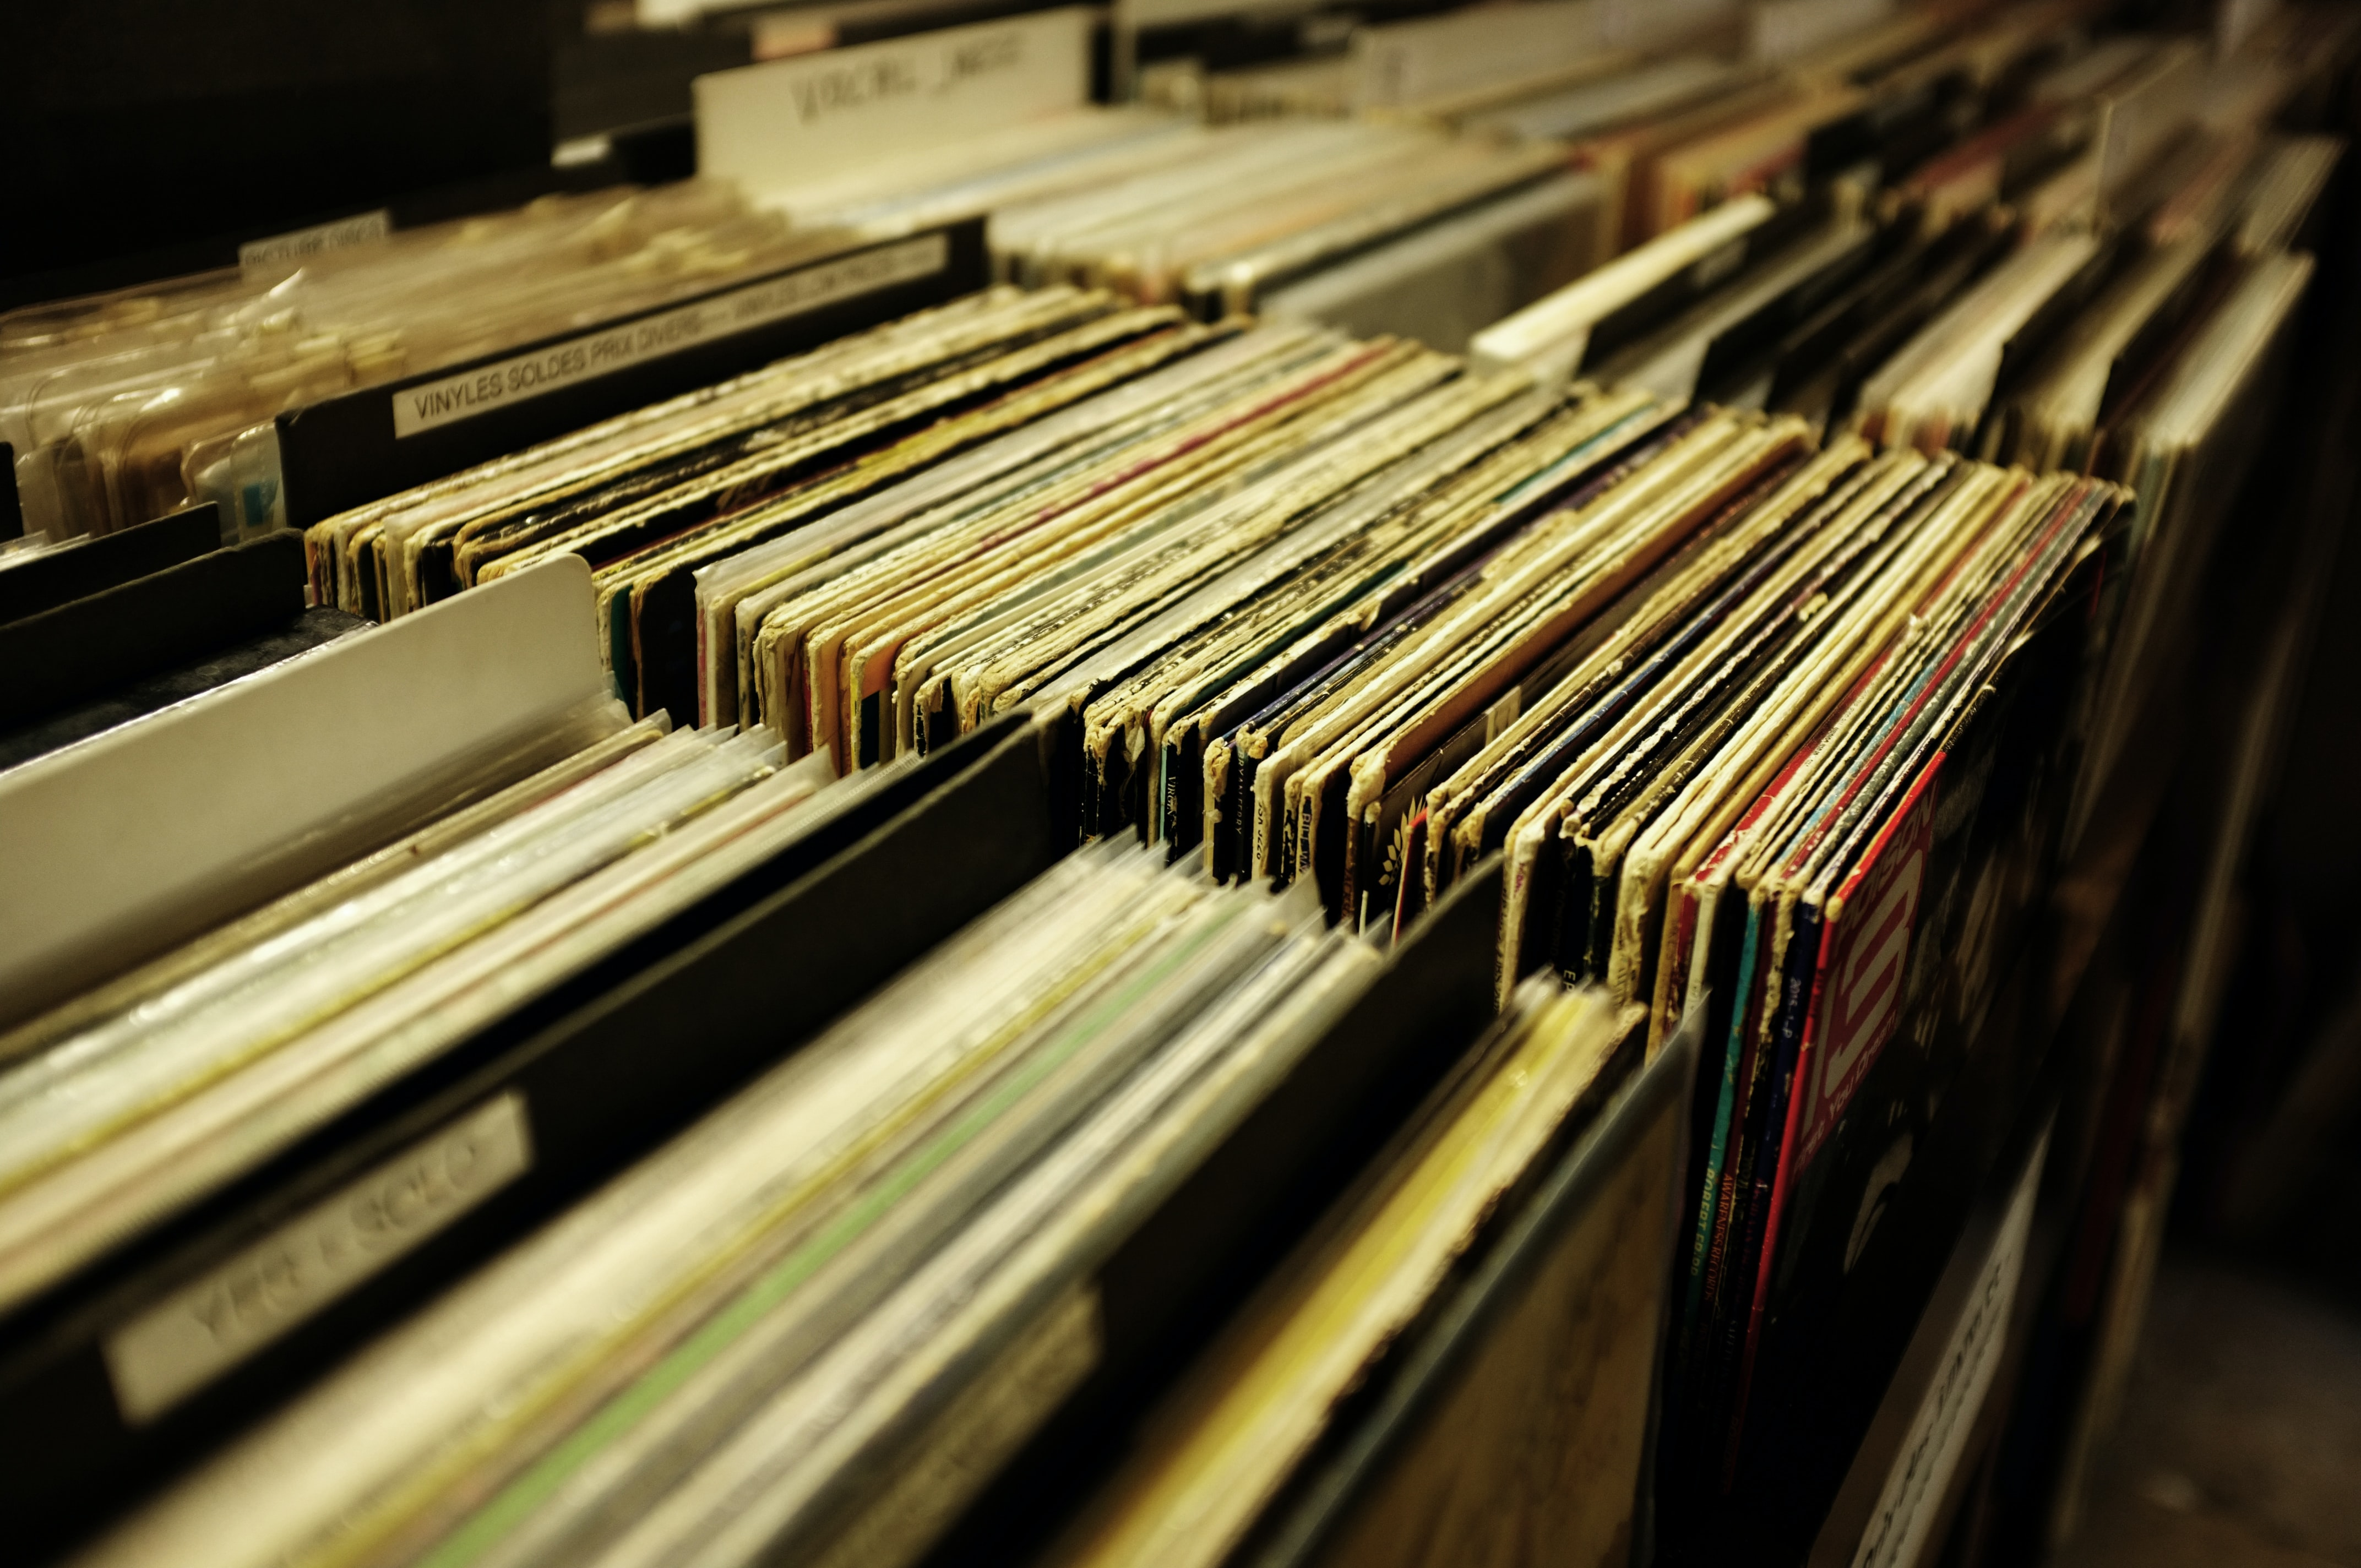 Vinyl records lined up on the shelf of a music store